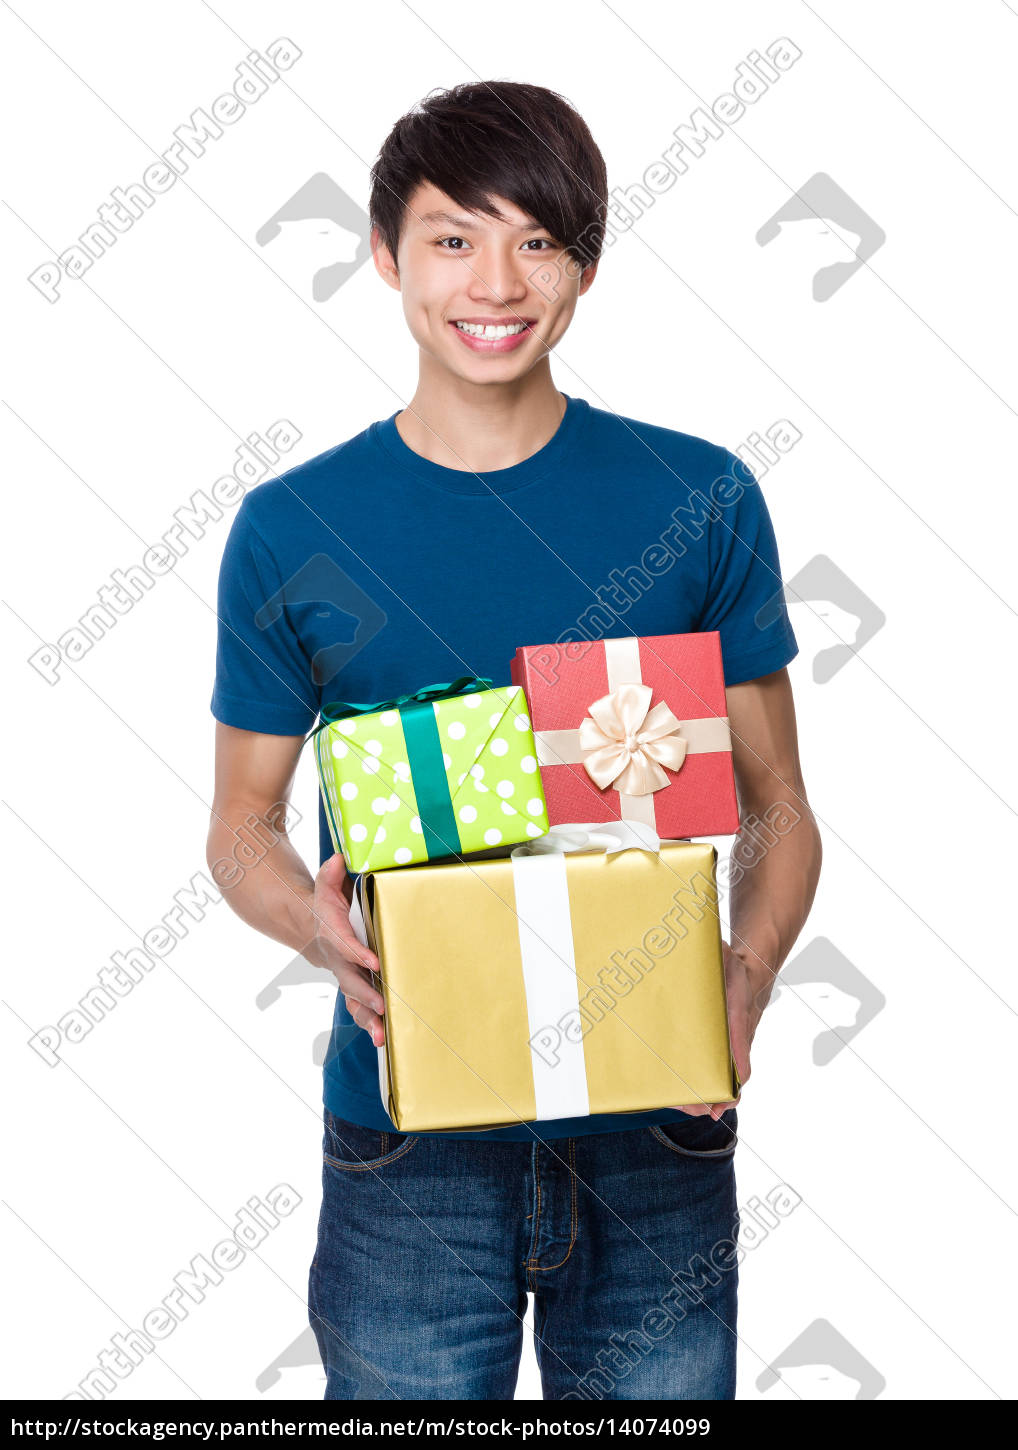 man, hold, with, present, box - 14074099